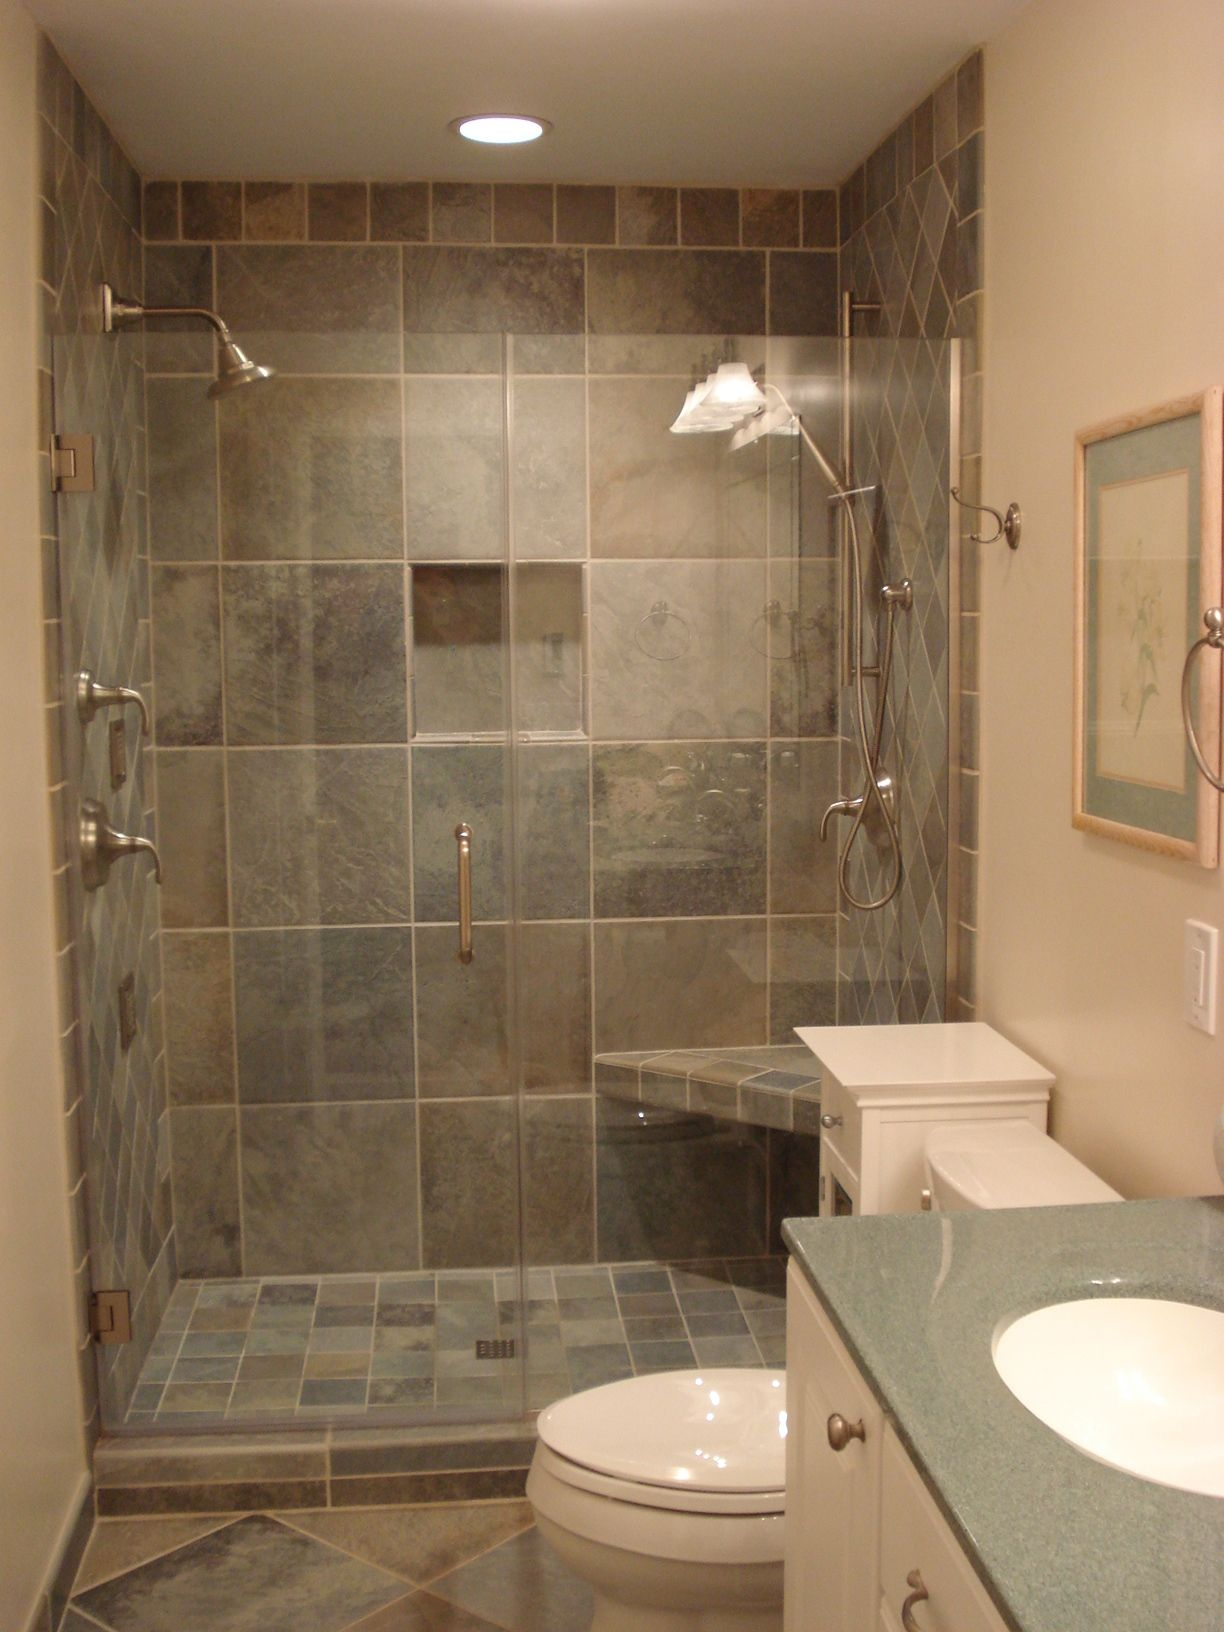 bathroom shower remodeling ideas. Remodel Bathroom Sydney Renovations Small Ideas For Master Bathrooms Luxury Within Shower Remodeling Pinterest